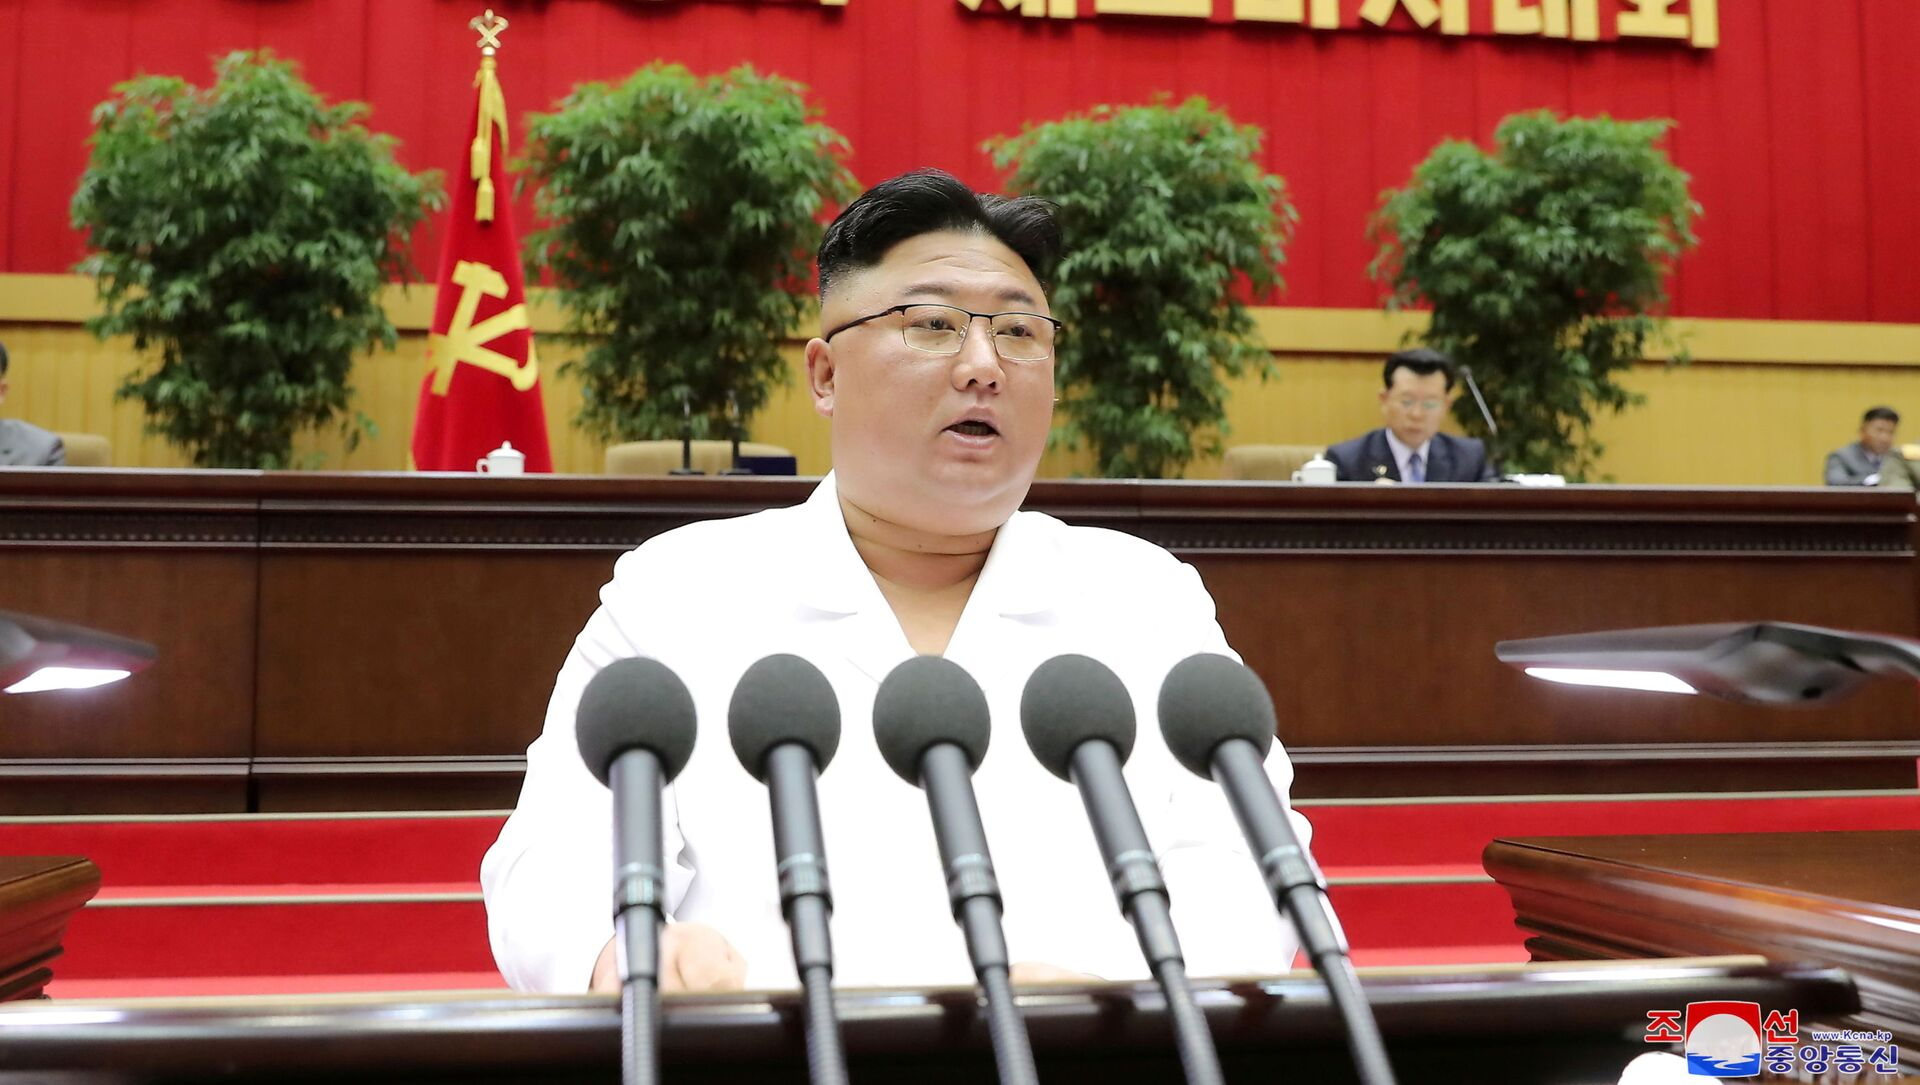 North Korean leader Kim Jong Un addresses a conference of cell secretaries of the ruling Workers' Party in Pyongyang, in this undated photo released on April 7, 2021 by North Korea's Korean Central News Agency (KCNA). - Sputnik International, 1920, 18.06.2021